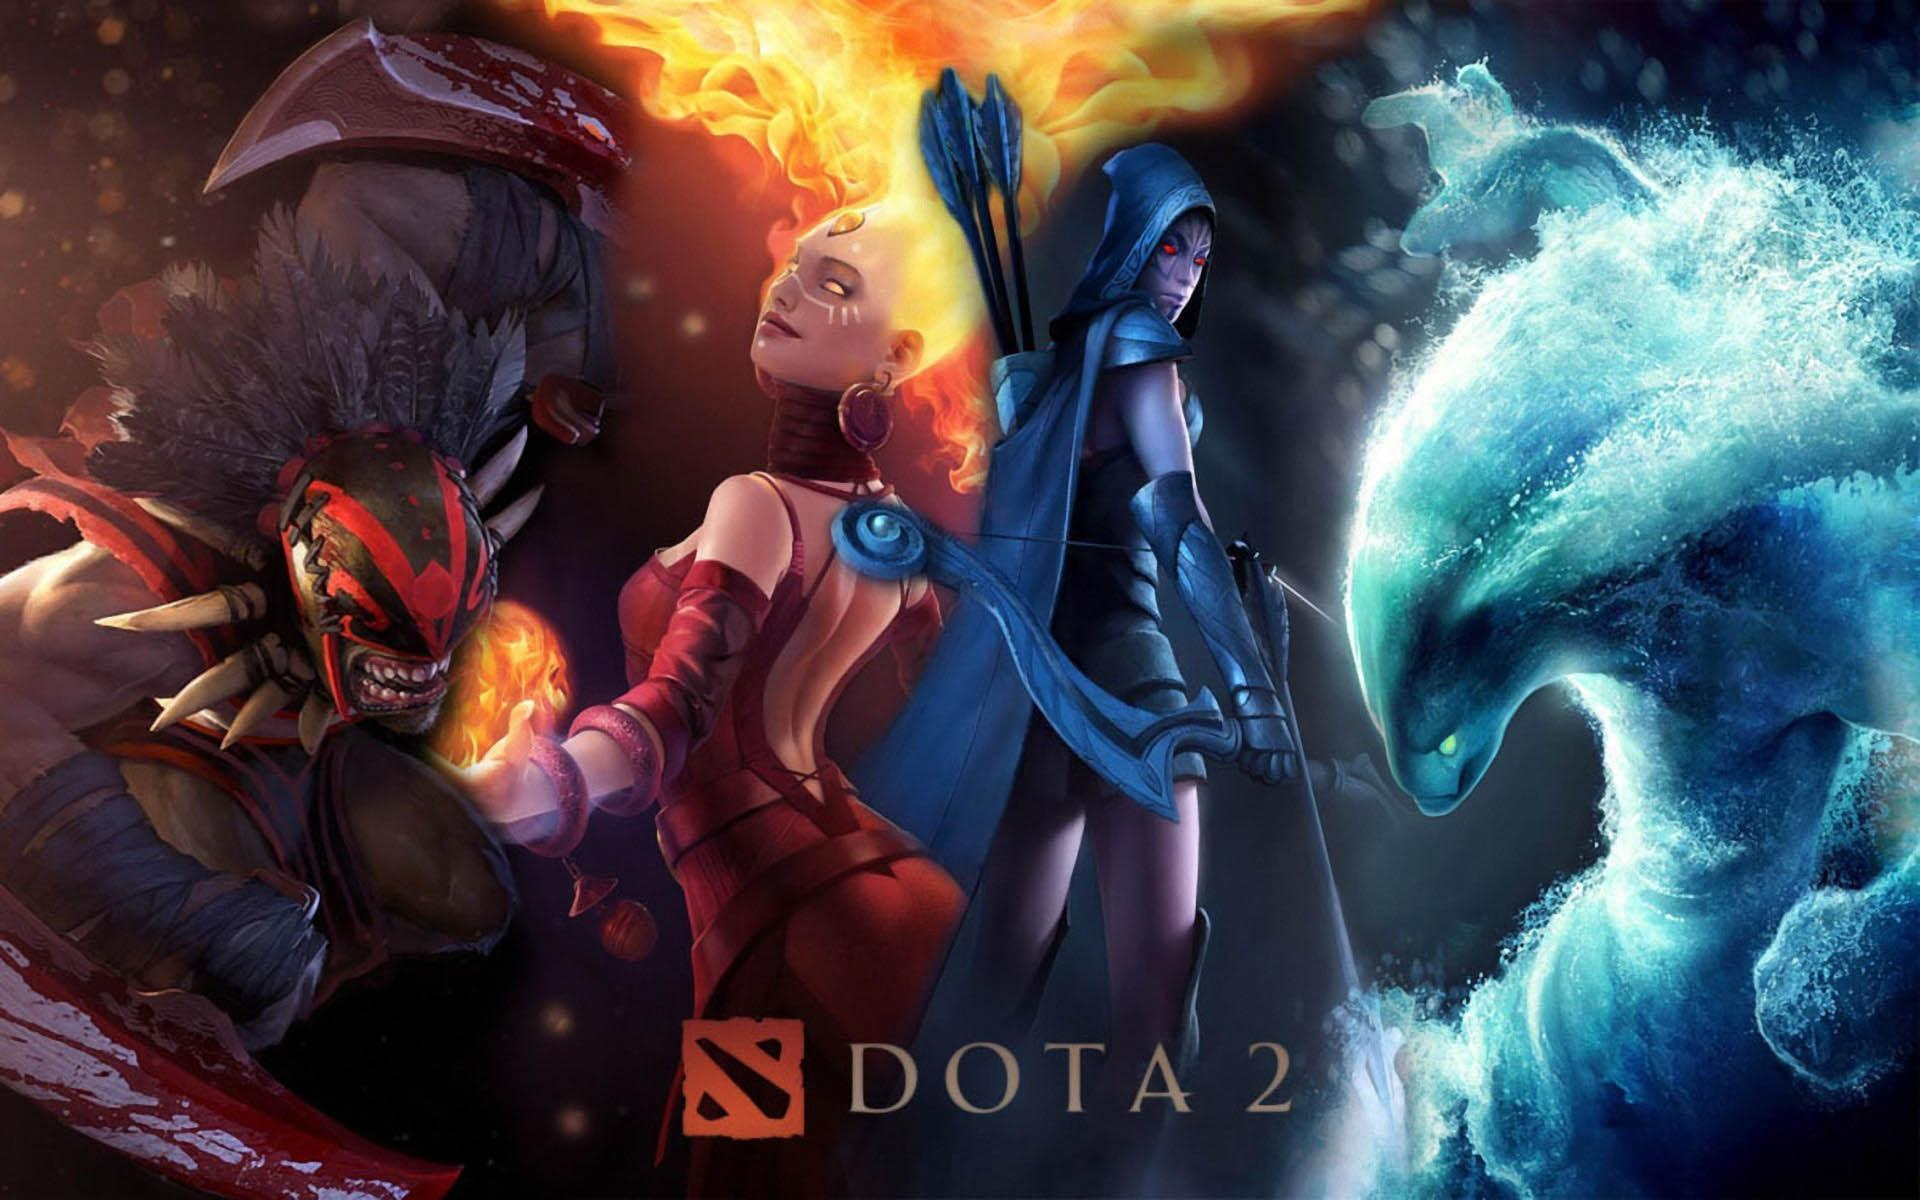 Hd wallpaper dota 2 - Dota2 Wallpapers Full Hd Wallpaper Search